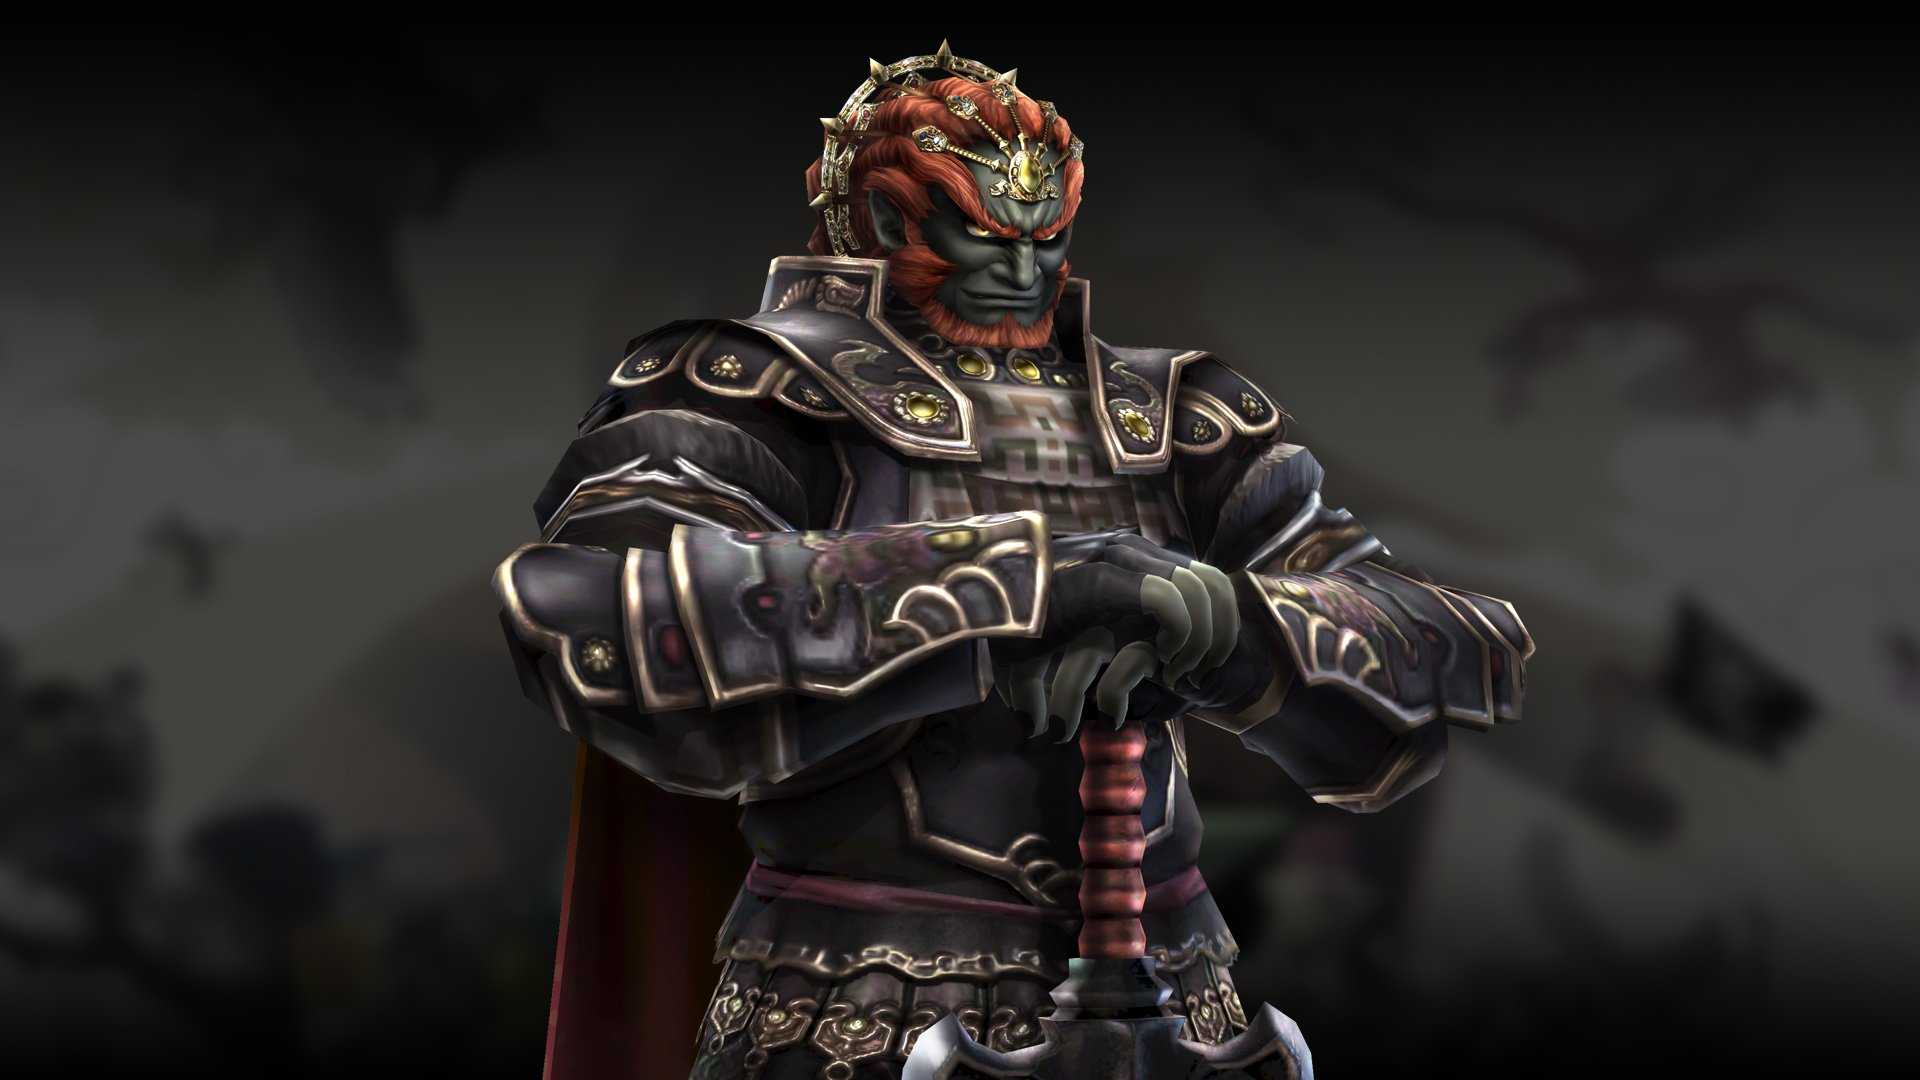 Ganondorf's last name confirmed as canon screenshot